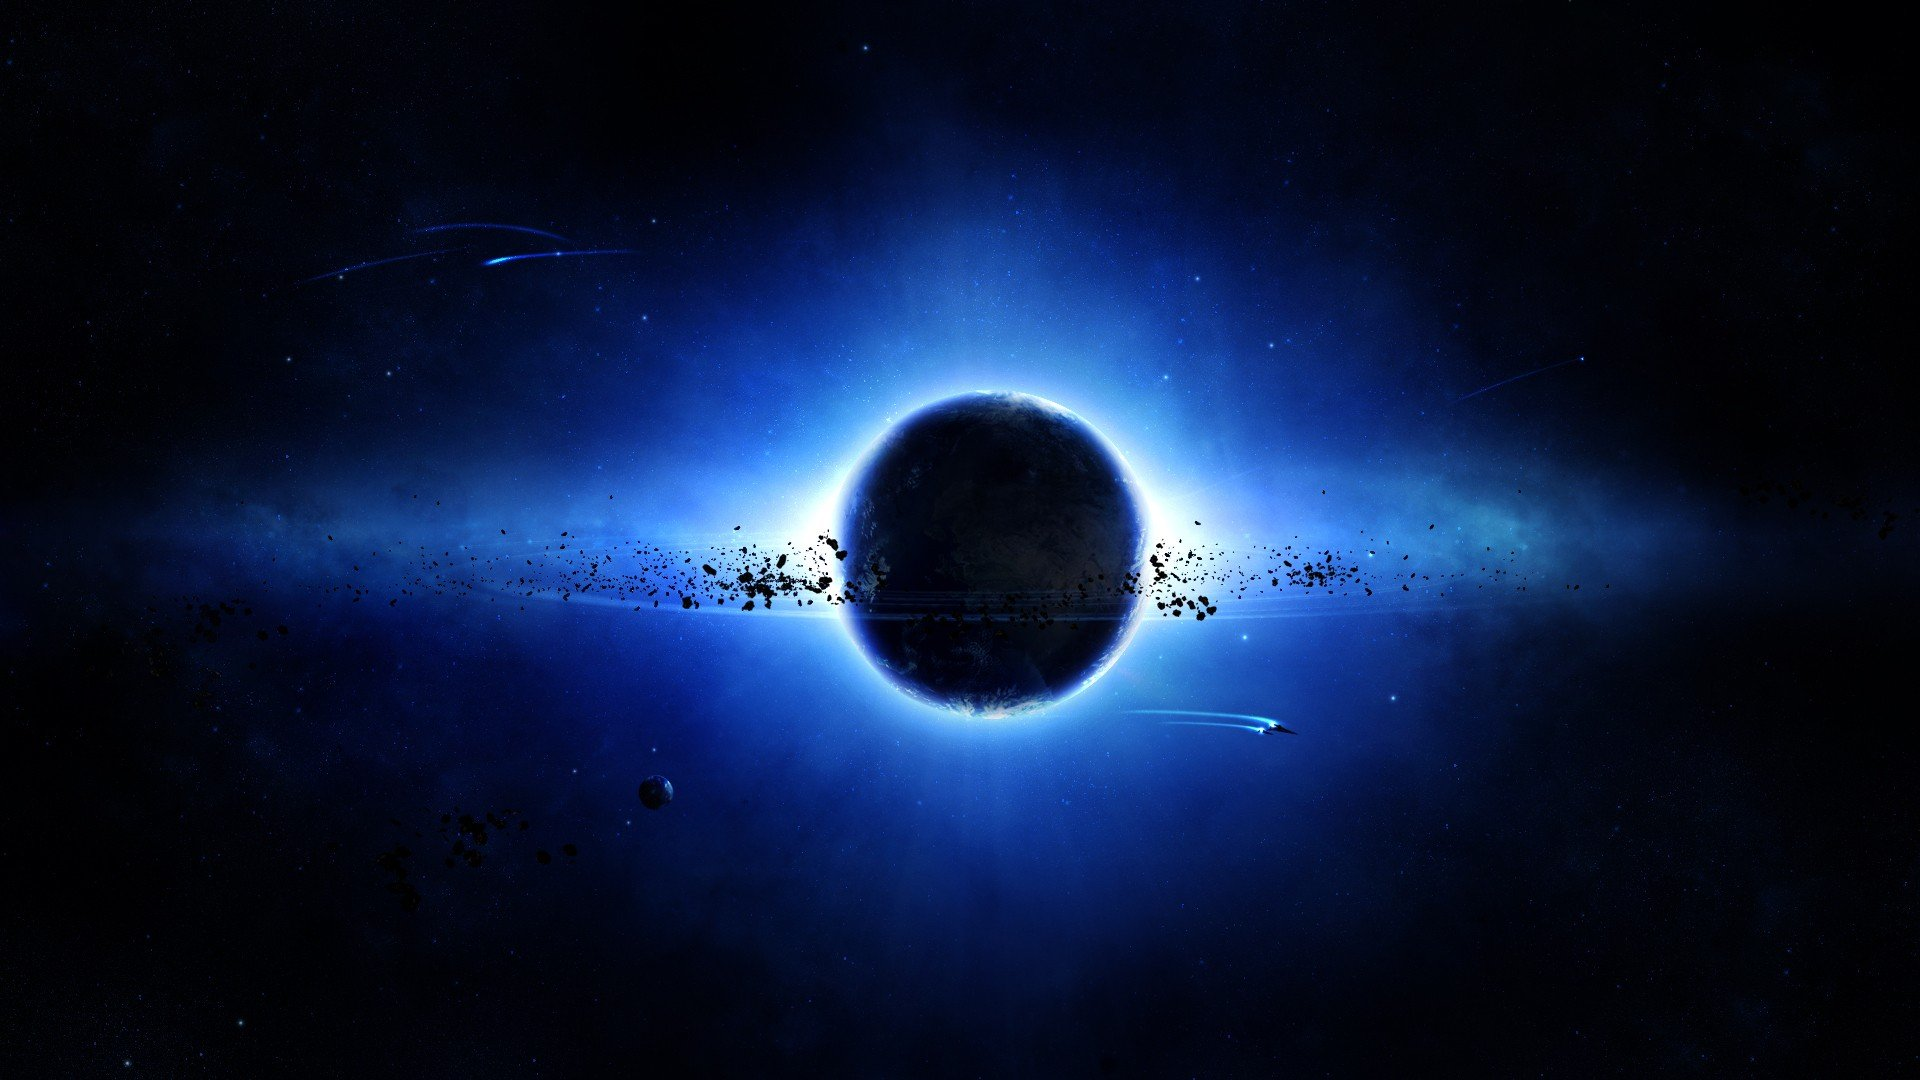 Black And Blue Space Wallpapers The Art Mad Wallpapers 1920x1080